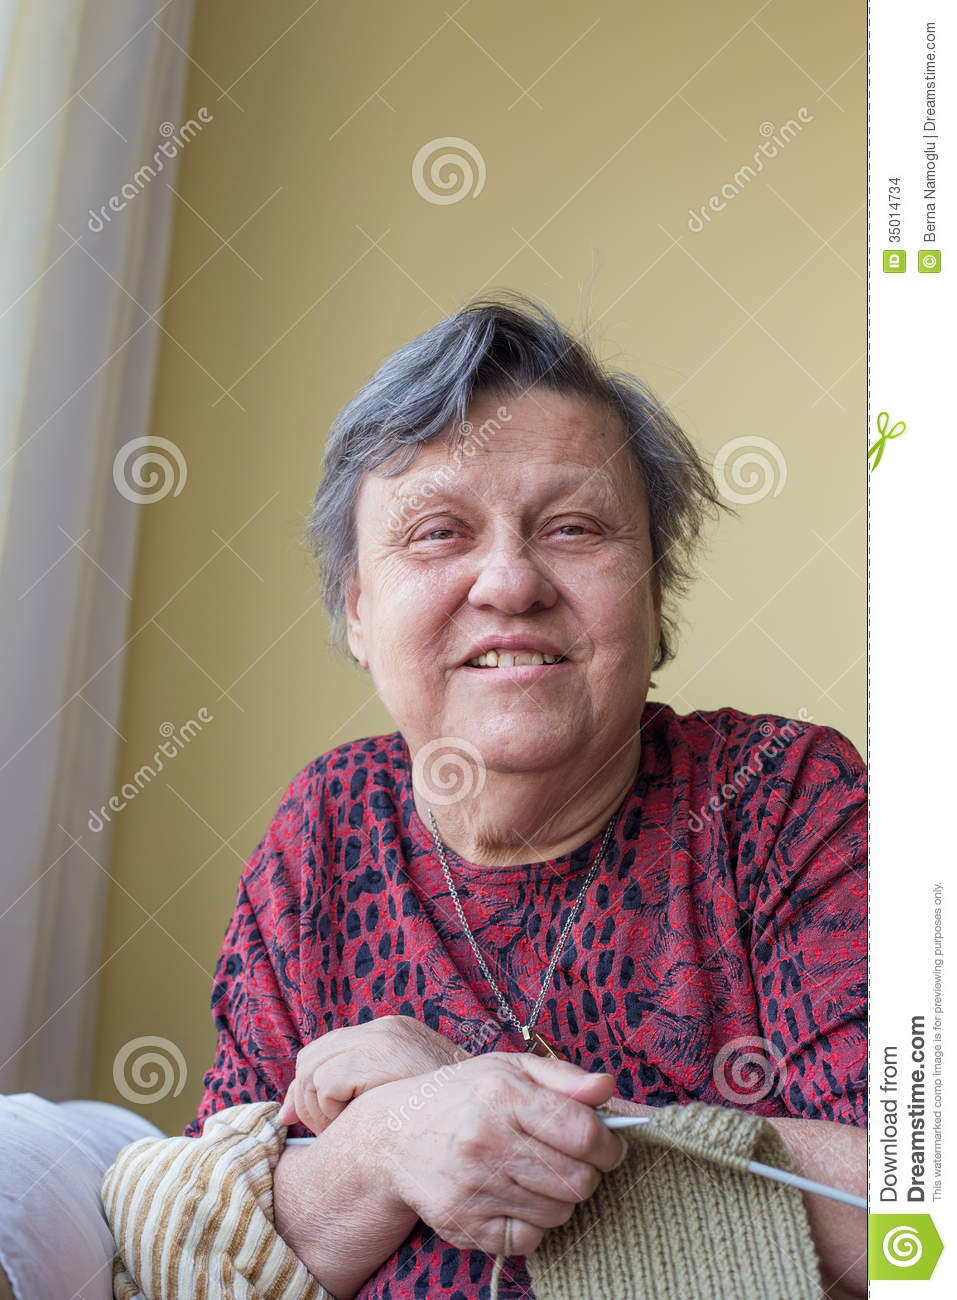 Old Lady Knitting Images : Old lady knitting stock images image